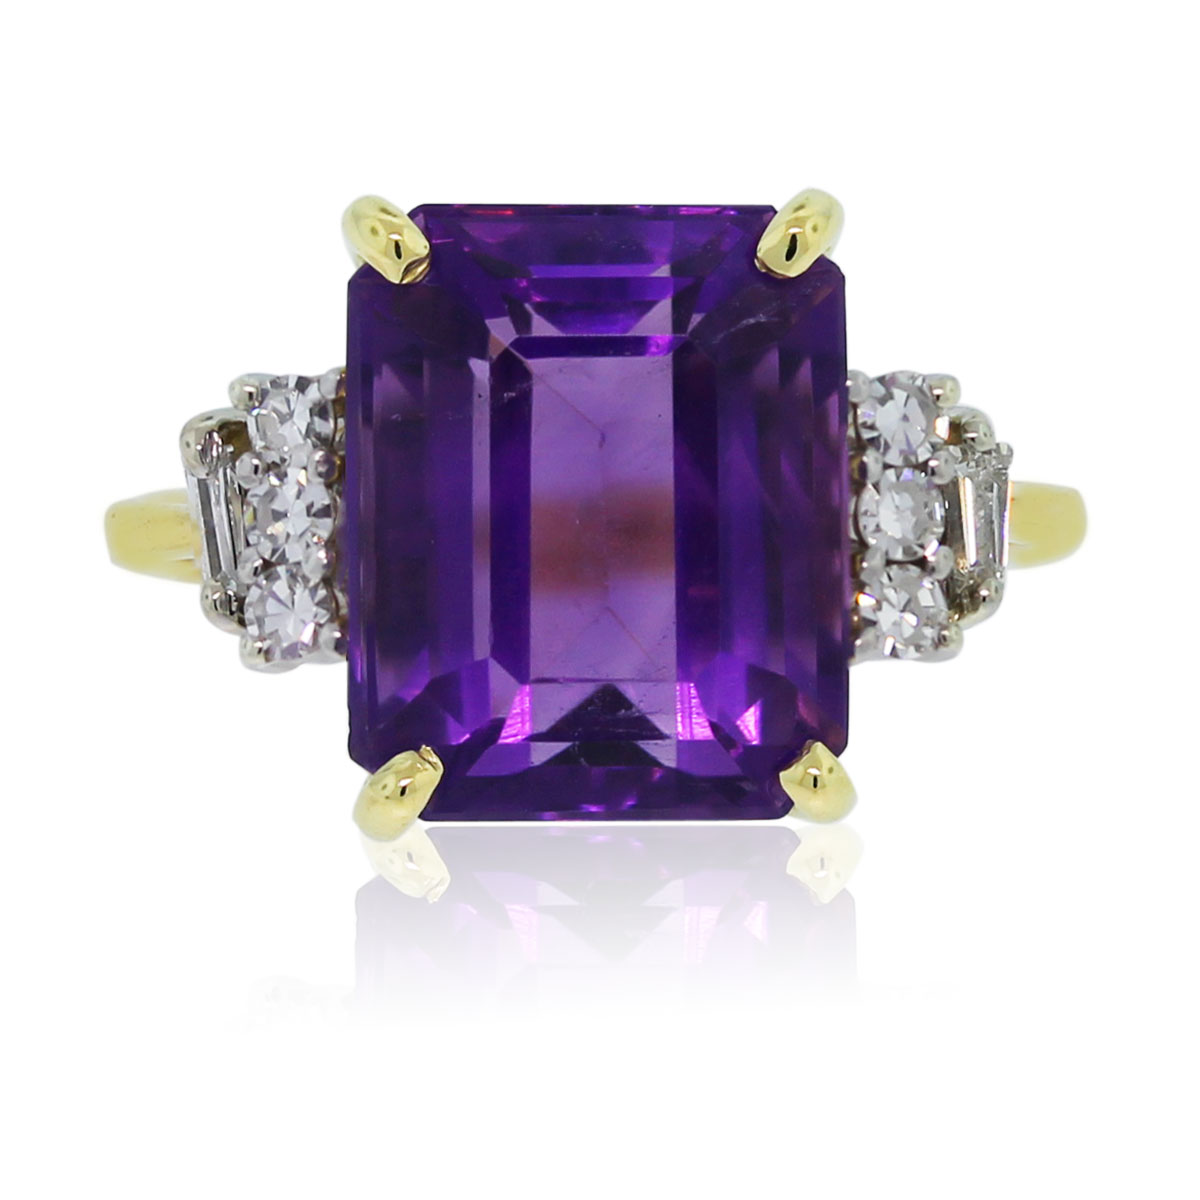 18k Yellow Gold Emerald Cut Amethyst Amp Diamond Ring